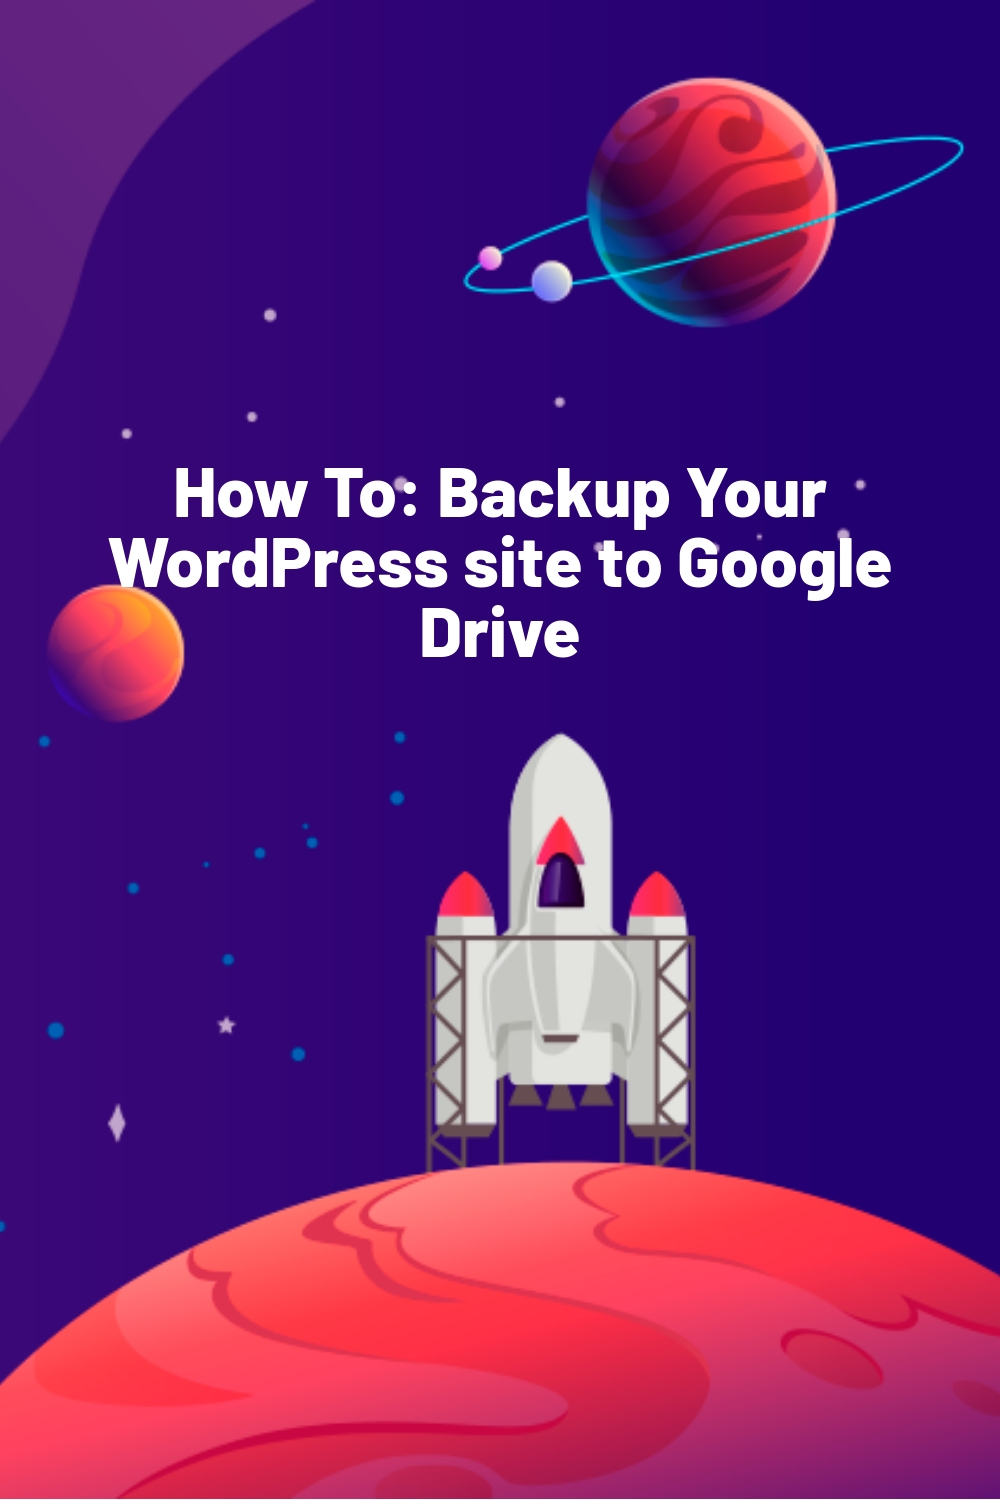 How To: Backup Your WordPress site to Google Drive